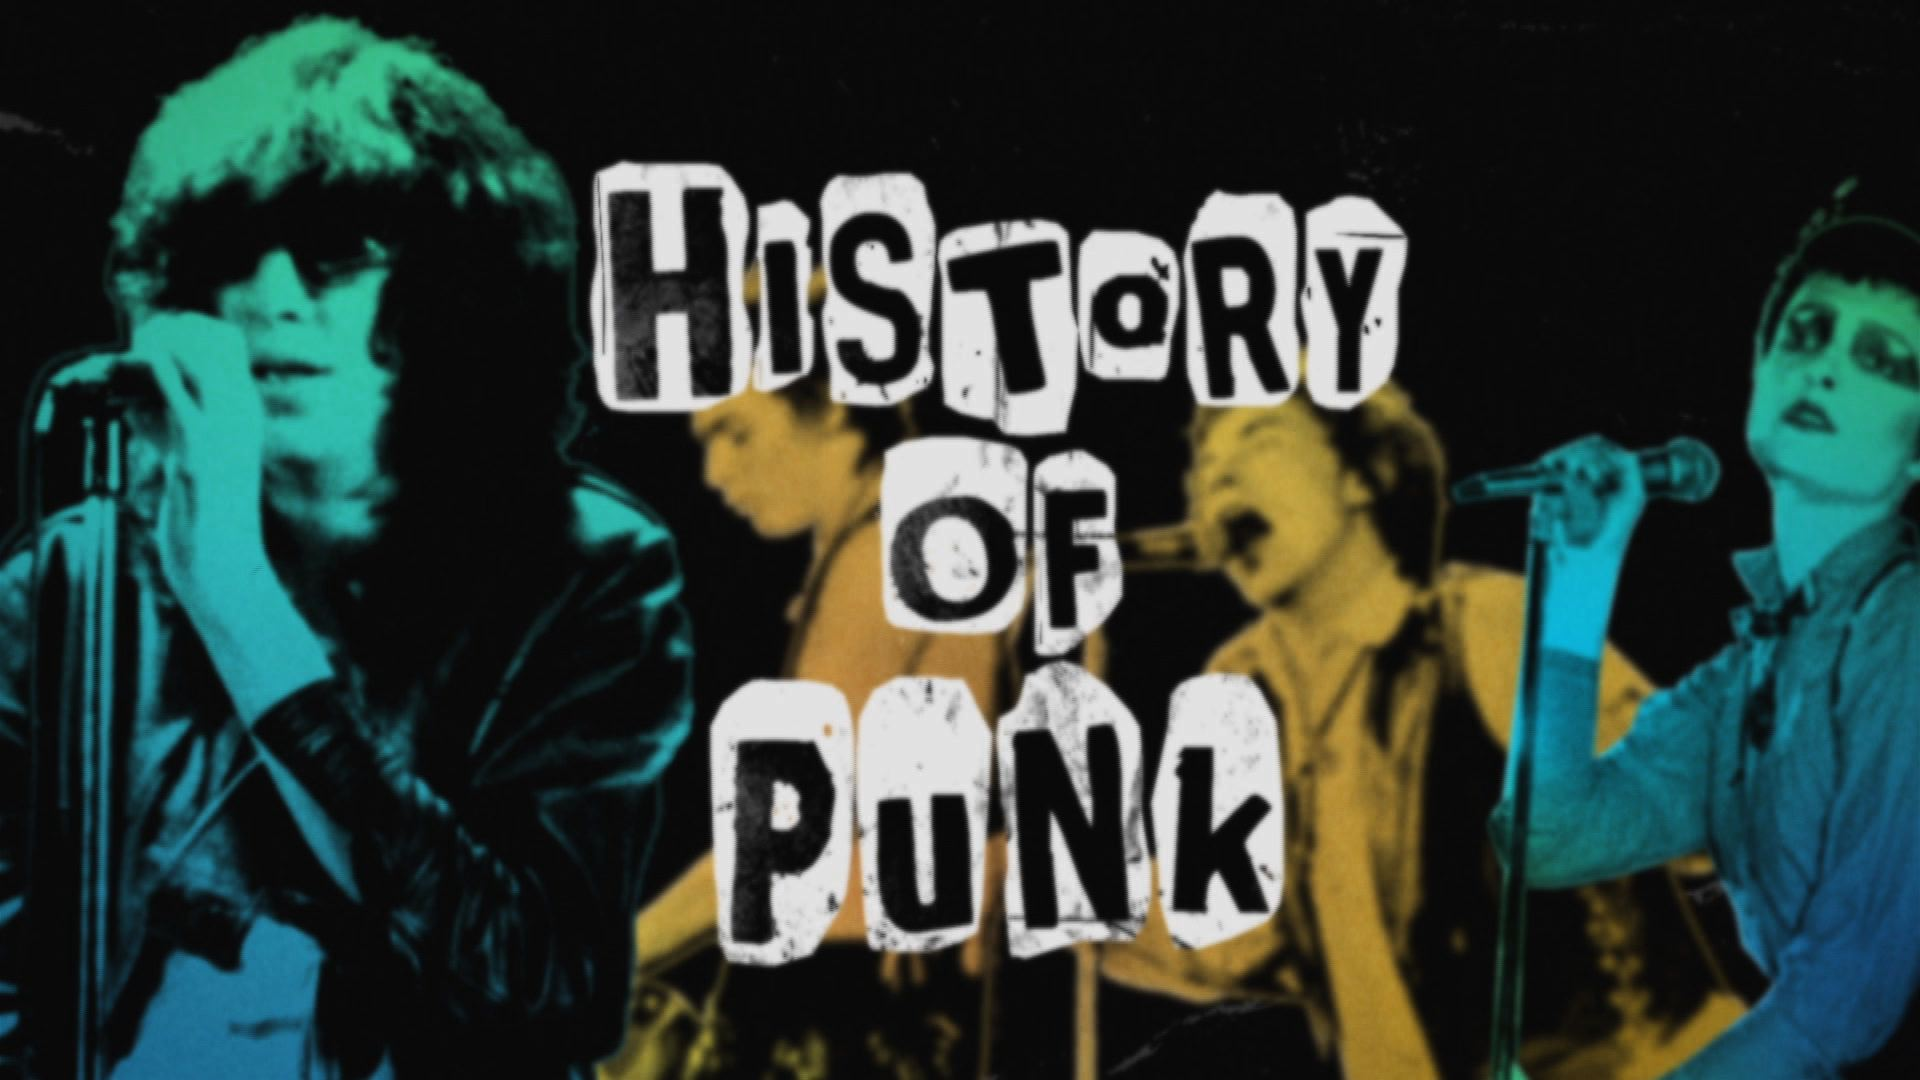 history of punk In 1978, the turkish rock musician tünay akdeniz informed the country's press - to subsequent horror - that his band were punk rock akdeniz was mostly sporting a bad boy image to push record sales rather than to make political history (his music was probably closer in style to glam or.